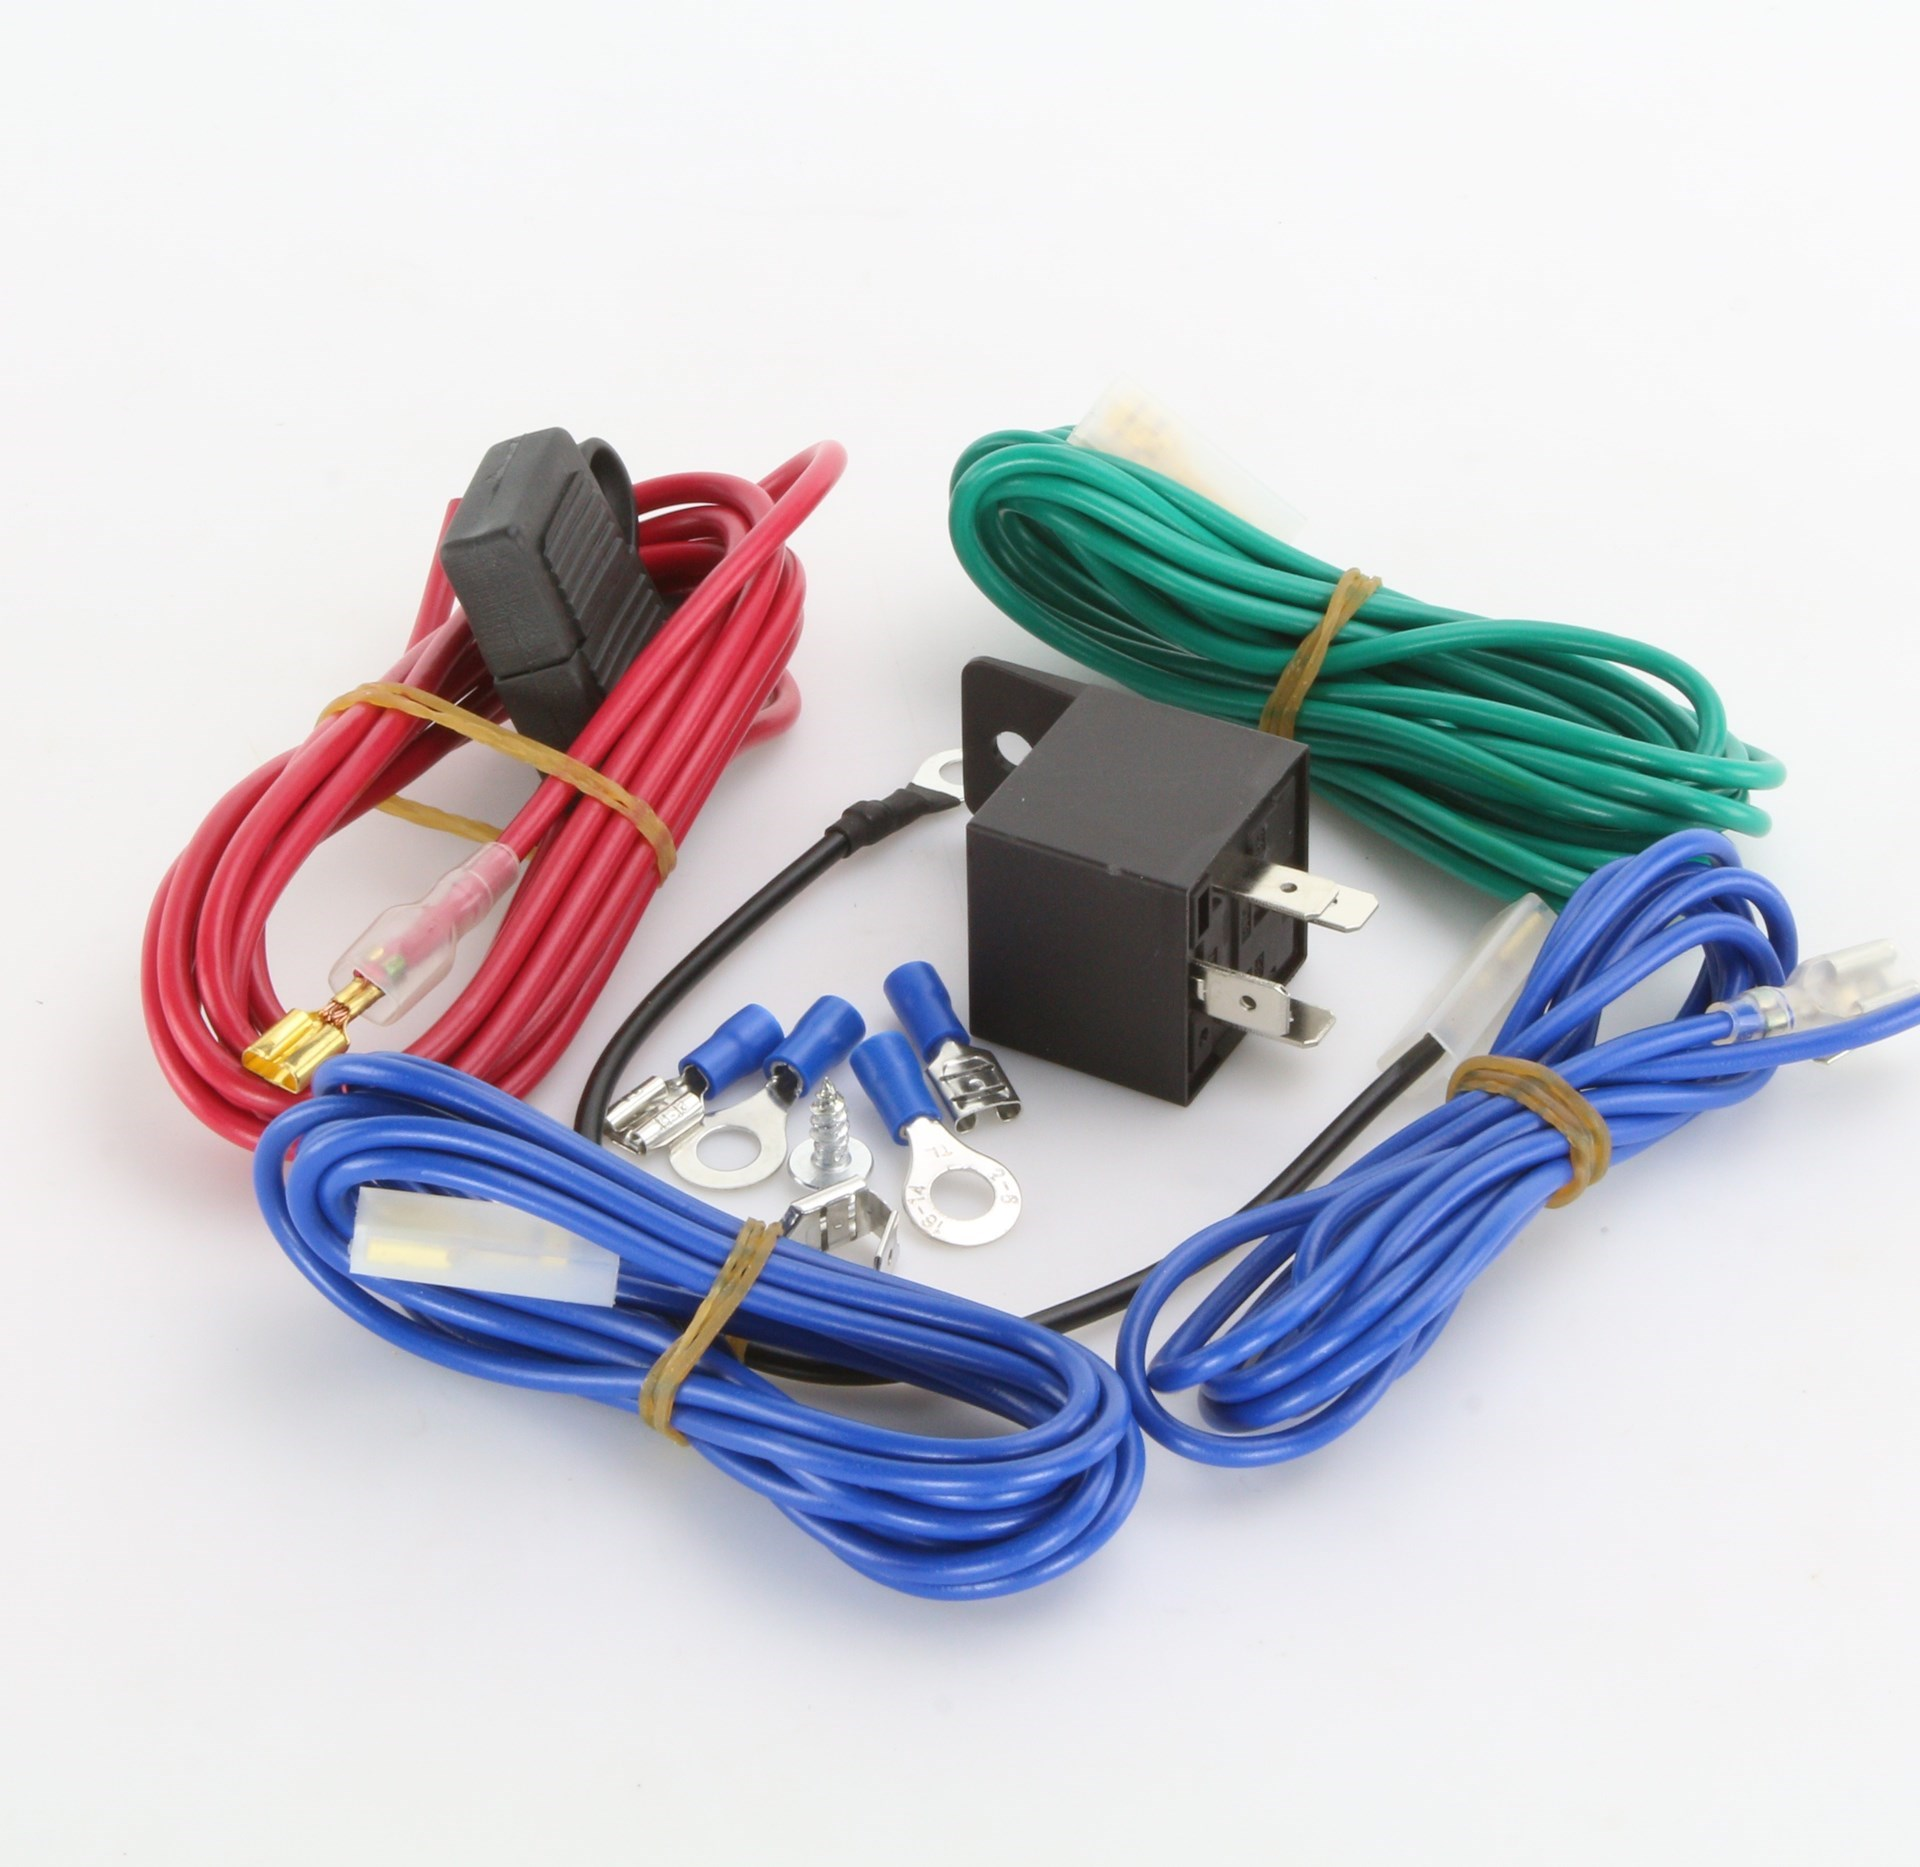 Lighting And Accessory Relay Wiring Kit from Car BuilderCar Builder Solutions